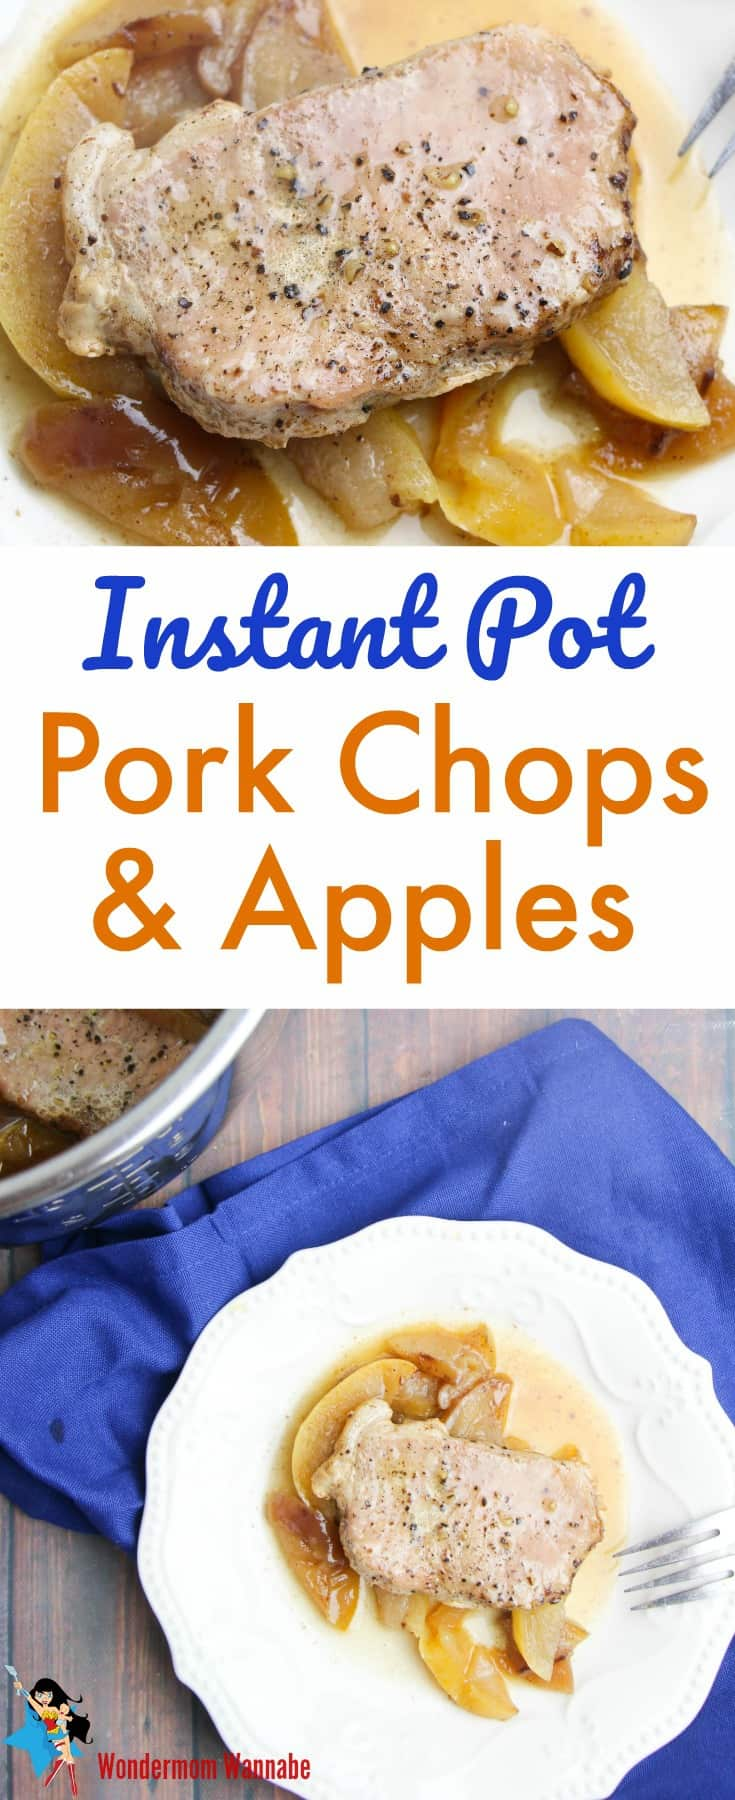 Pefect for fall! These instant pot pork chops and apples are moist, flavorful and delicious. Even better, kids love them! #instantpot #pressurecooker